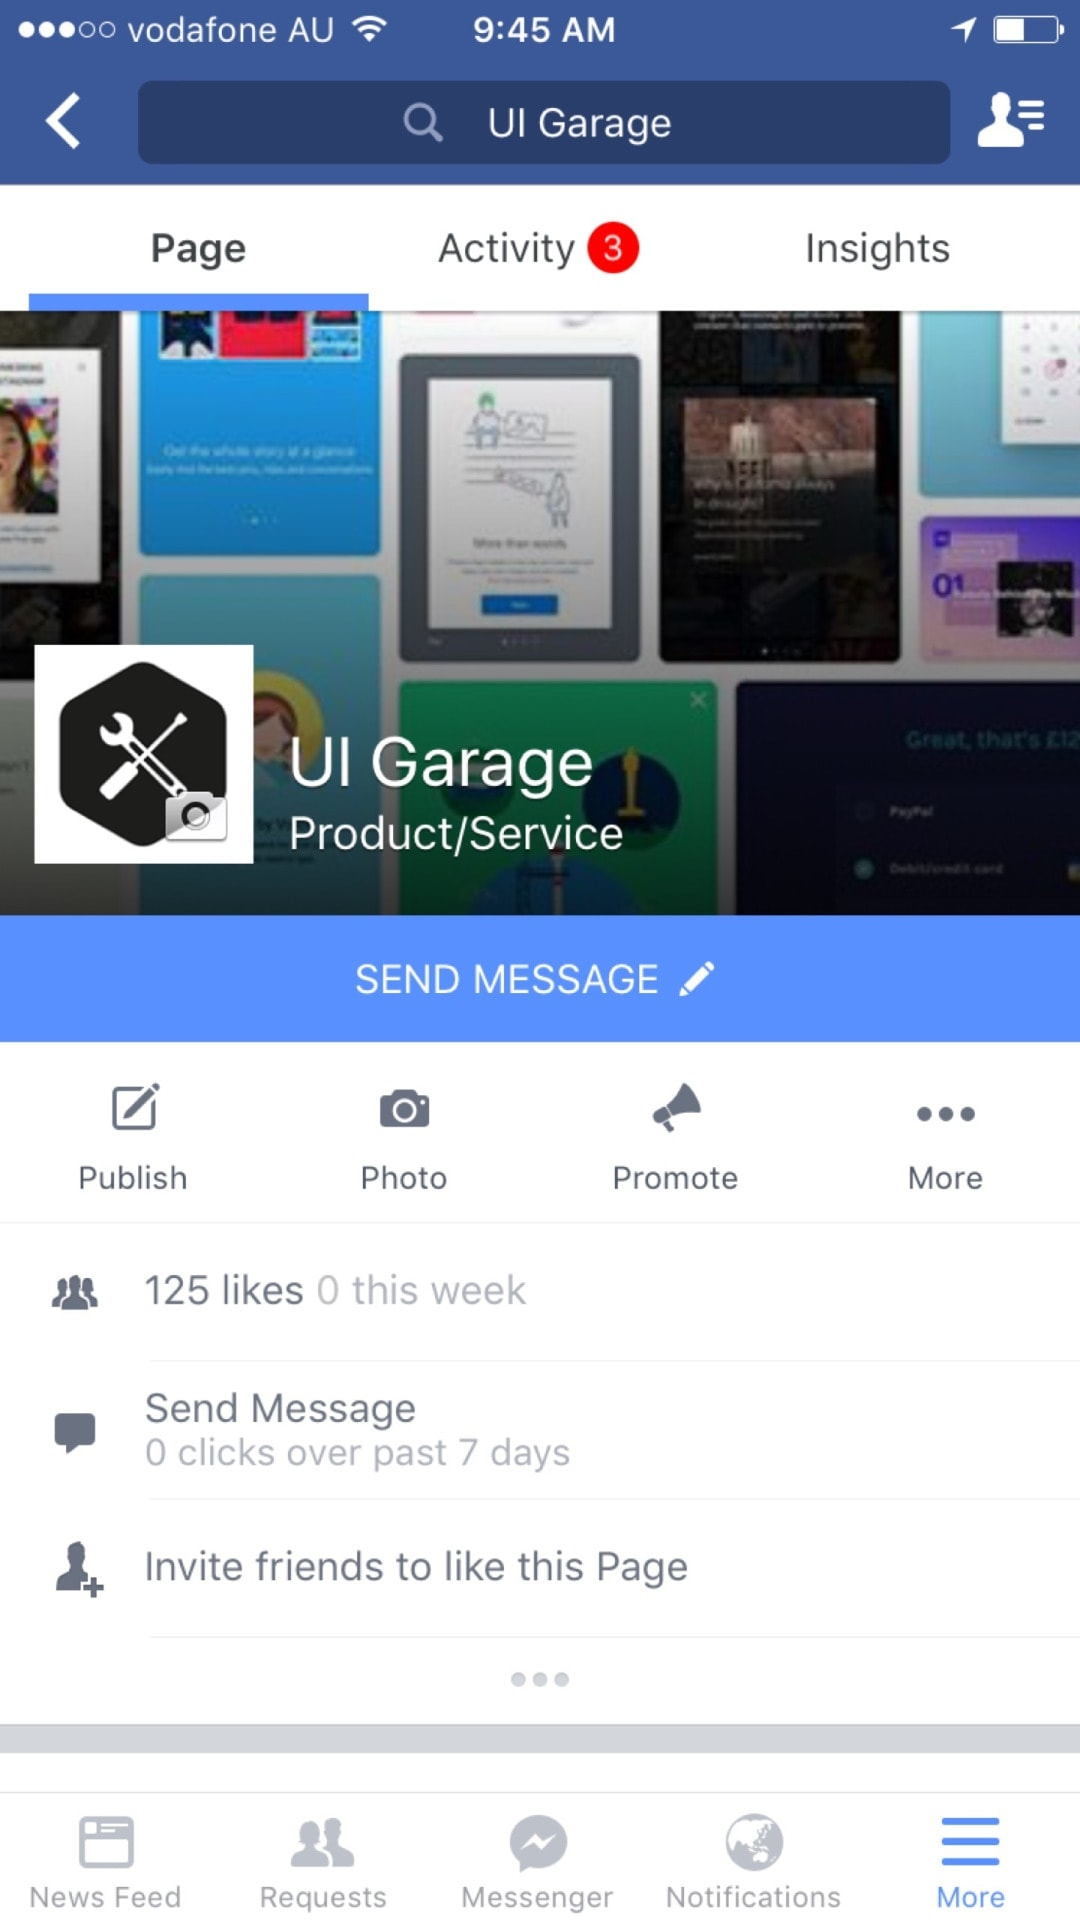 Tab bar by Facebook from UIGarage